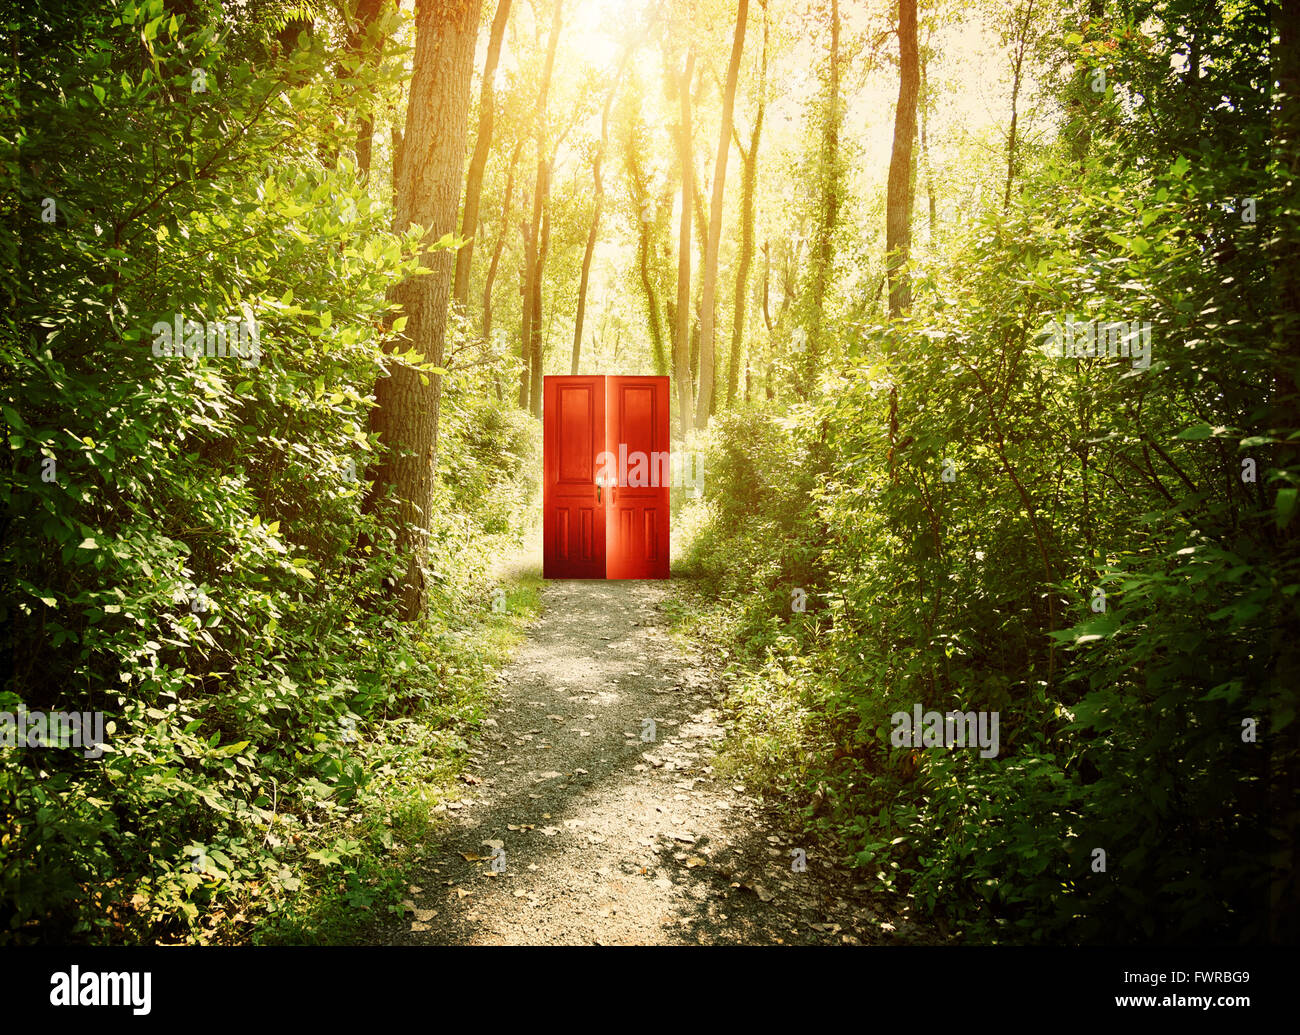 A red doorway is on a trail in the woods with trees for a conceptual concept about faith, freedom or freedom concept. - Stock Image